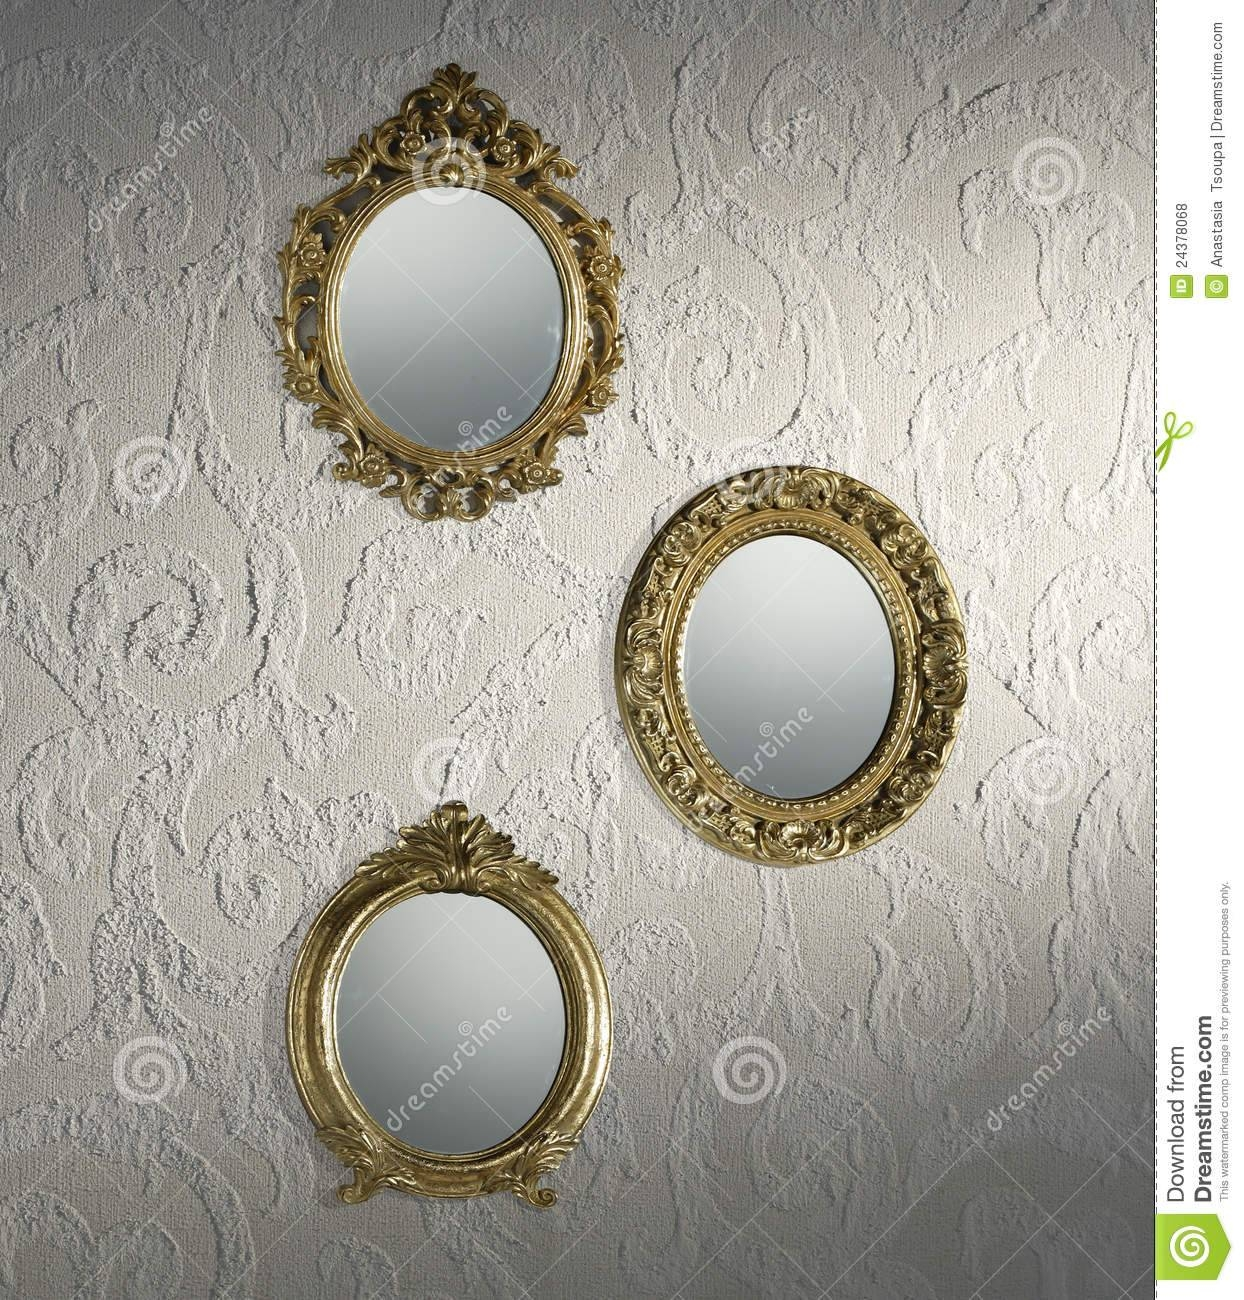 Antique Mirrors ~ Peeinn pertaining to Antique Mirrors London (Image 13 of 25)